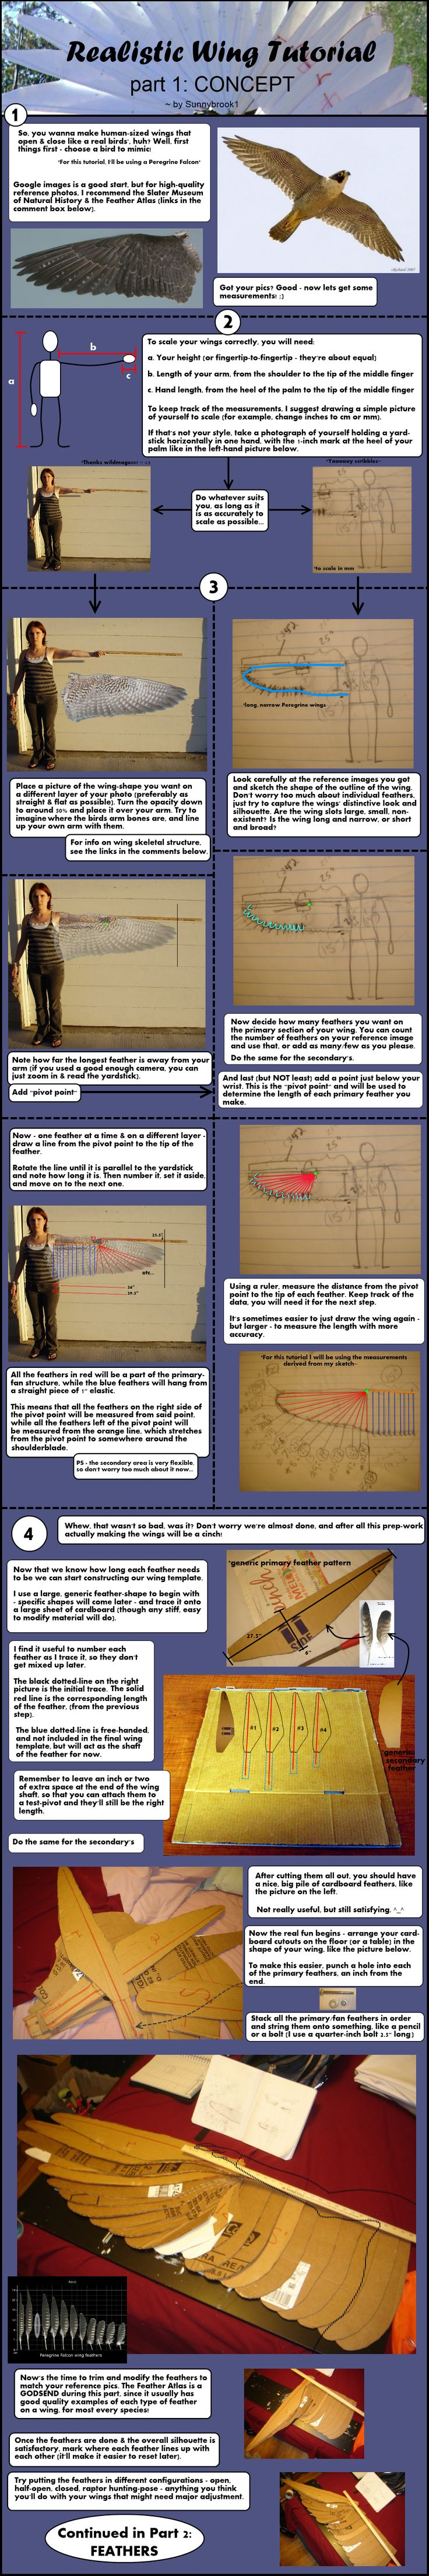 Realistic Wing Tutorial - P.1 by Sunnybrook1 on deviantART